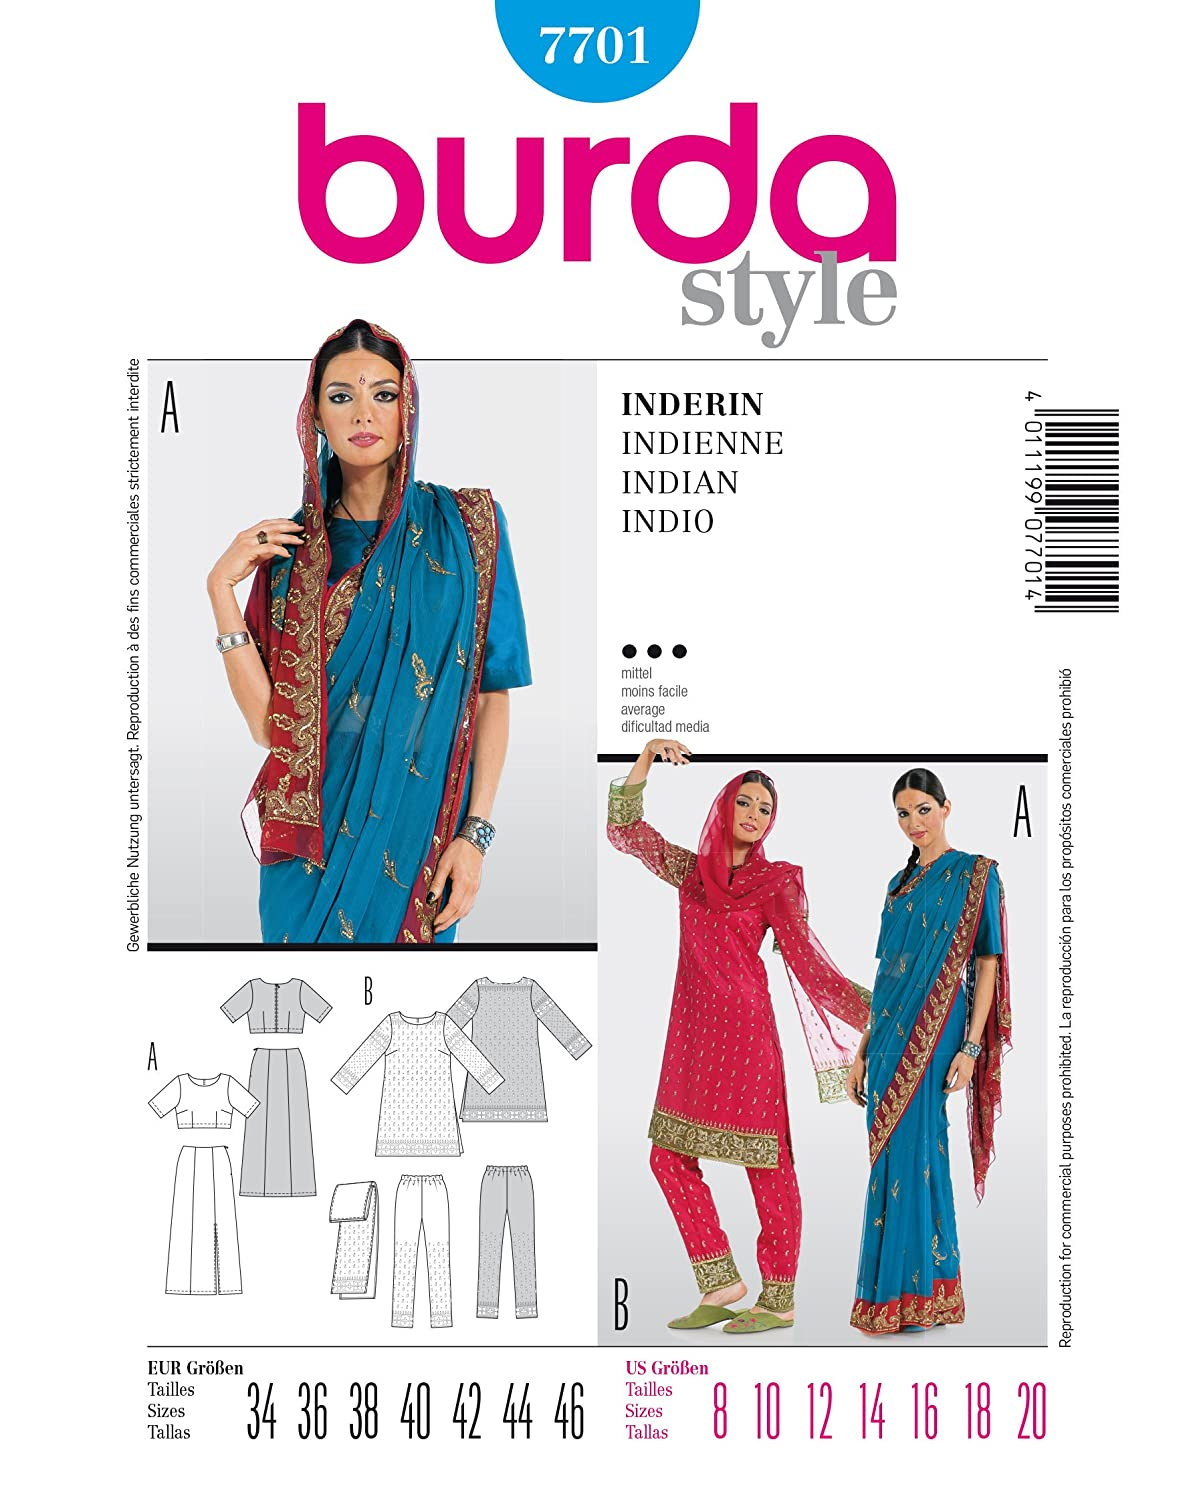 Burda B7701 Indian Sewing Pattern/Template 19 x 13cm: Amazon.co.uk ...